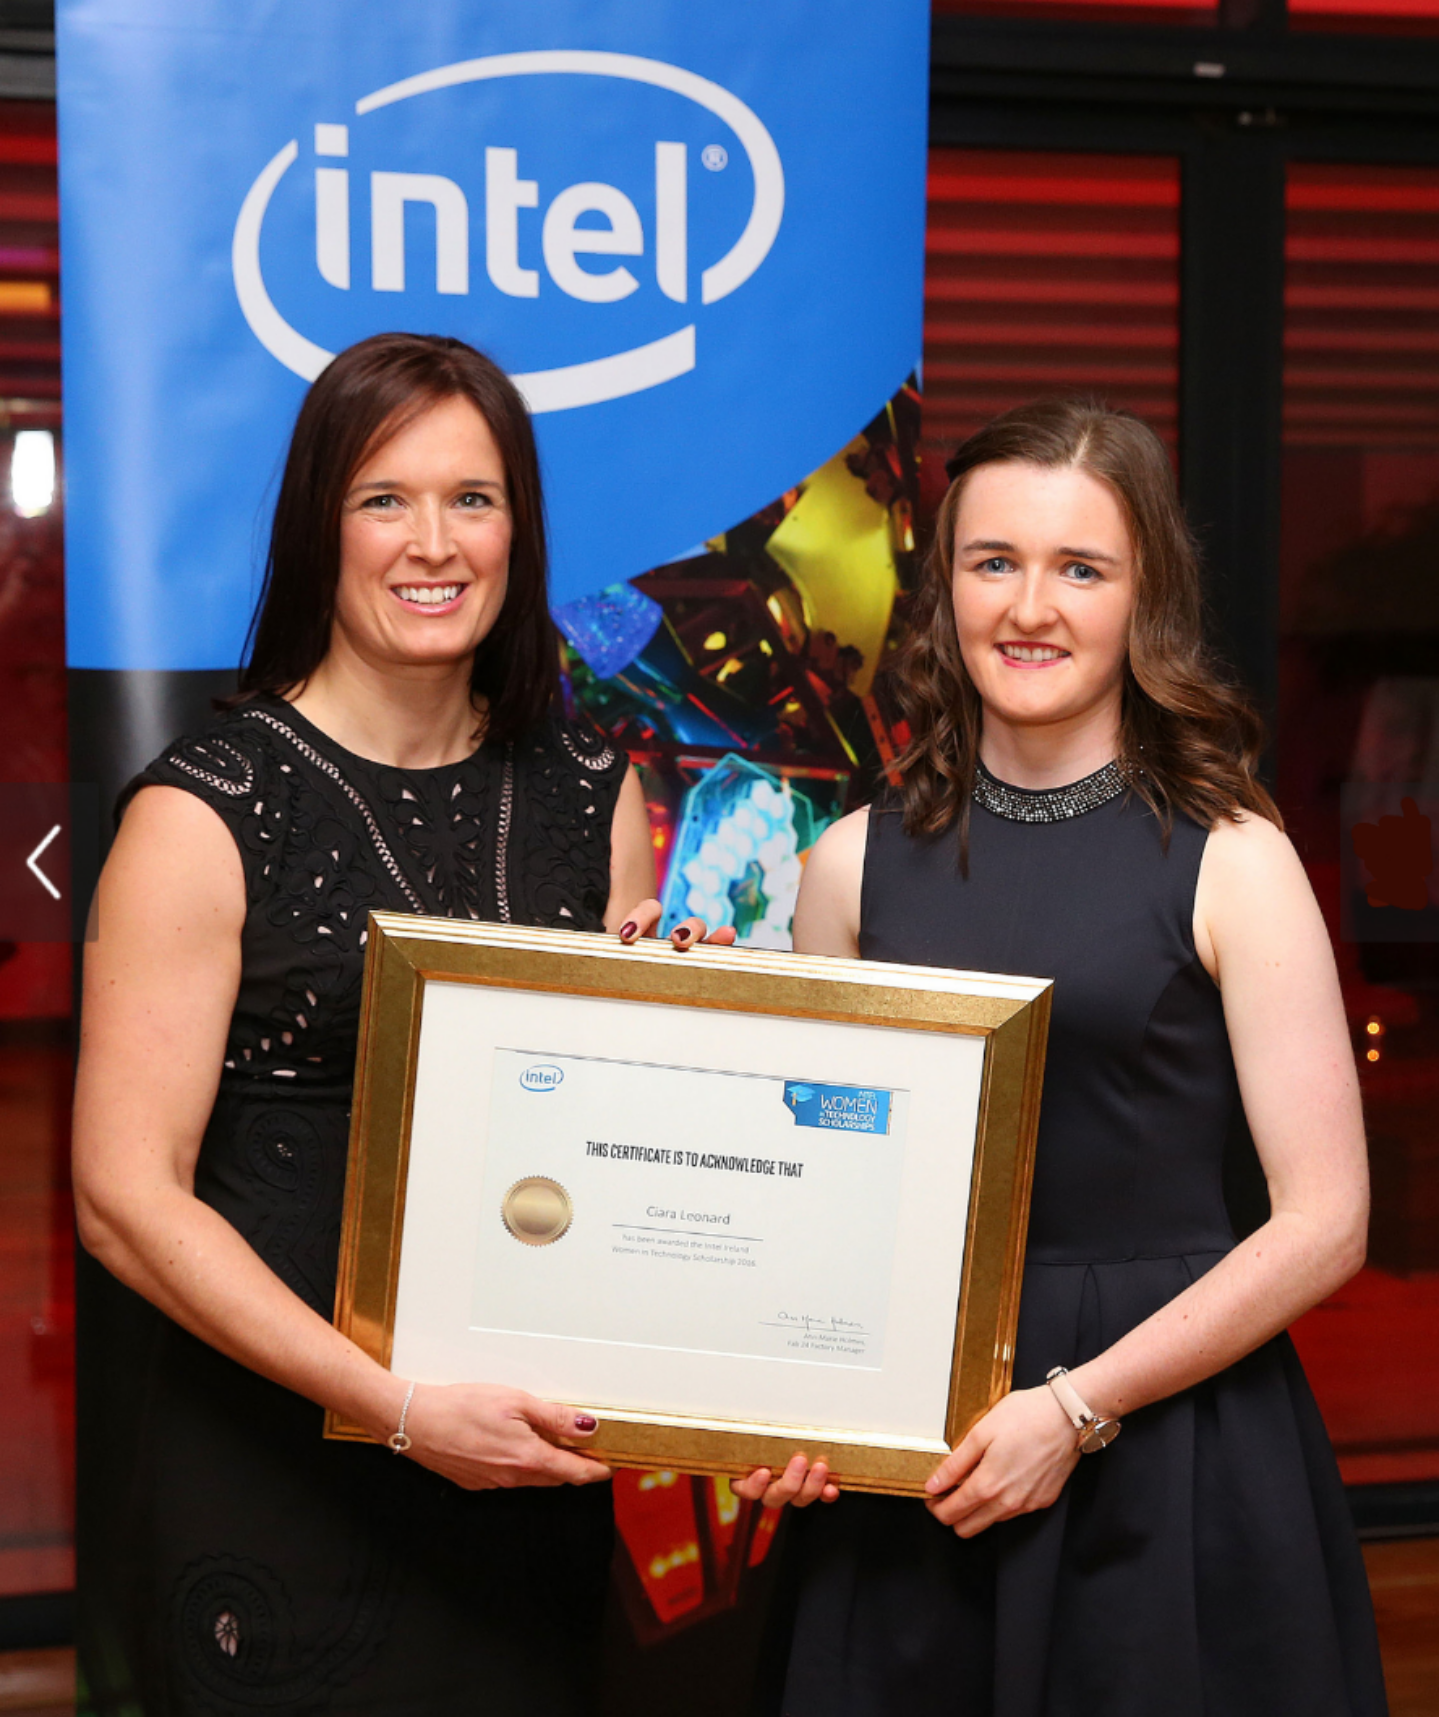 Process & Chemical Engineering First Year Student, Ciara Leonard awarded Intel Women in Technology Scholarship 2016